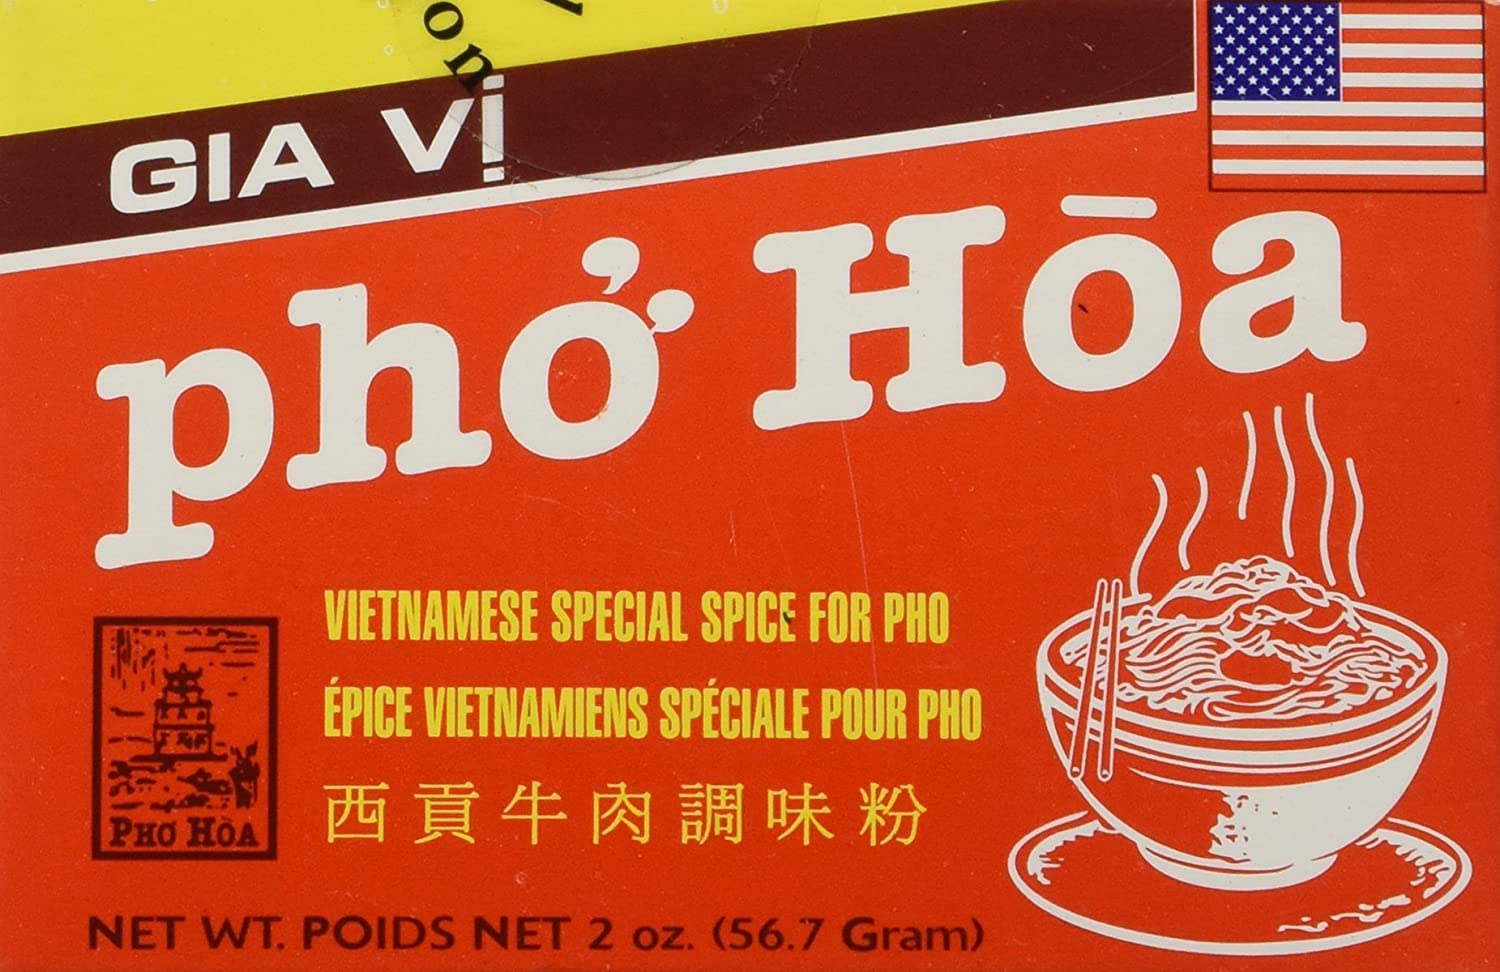 Gia Vi Selling Nau Pho Hoa Noodle Sales results No. 1 Beef Spices Soup